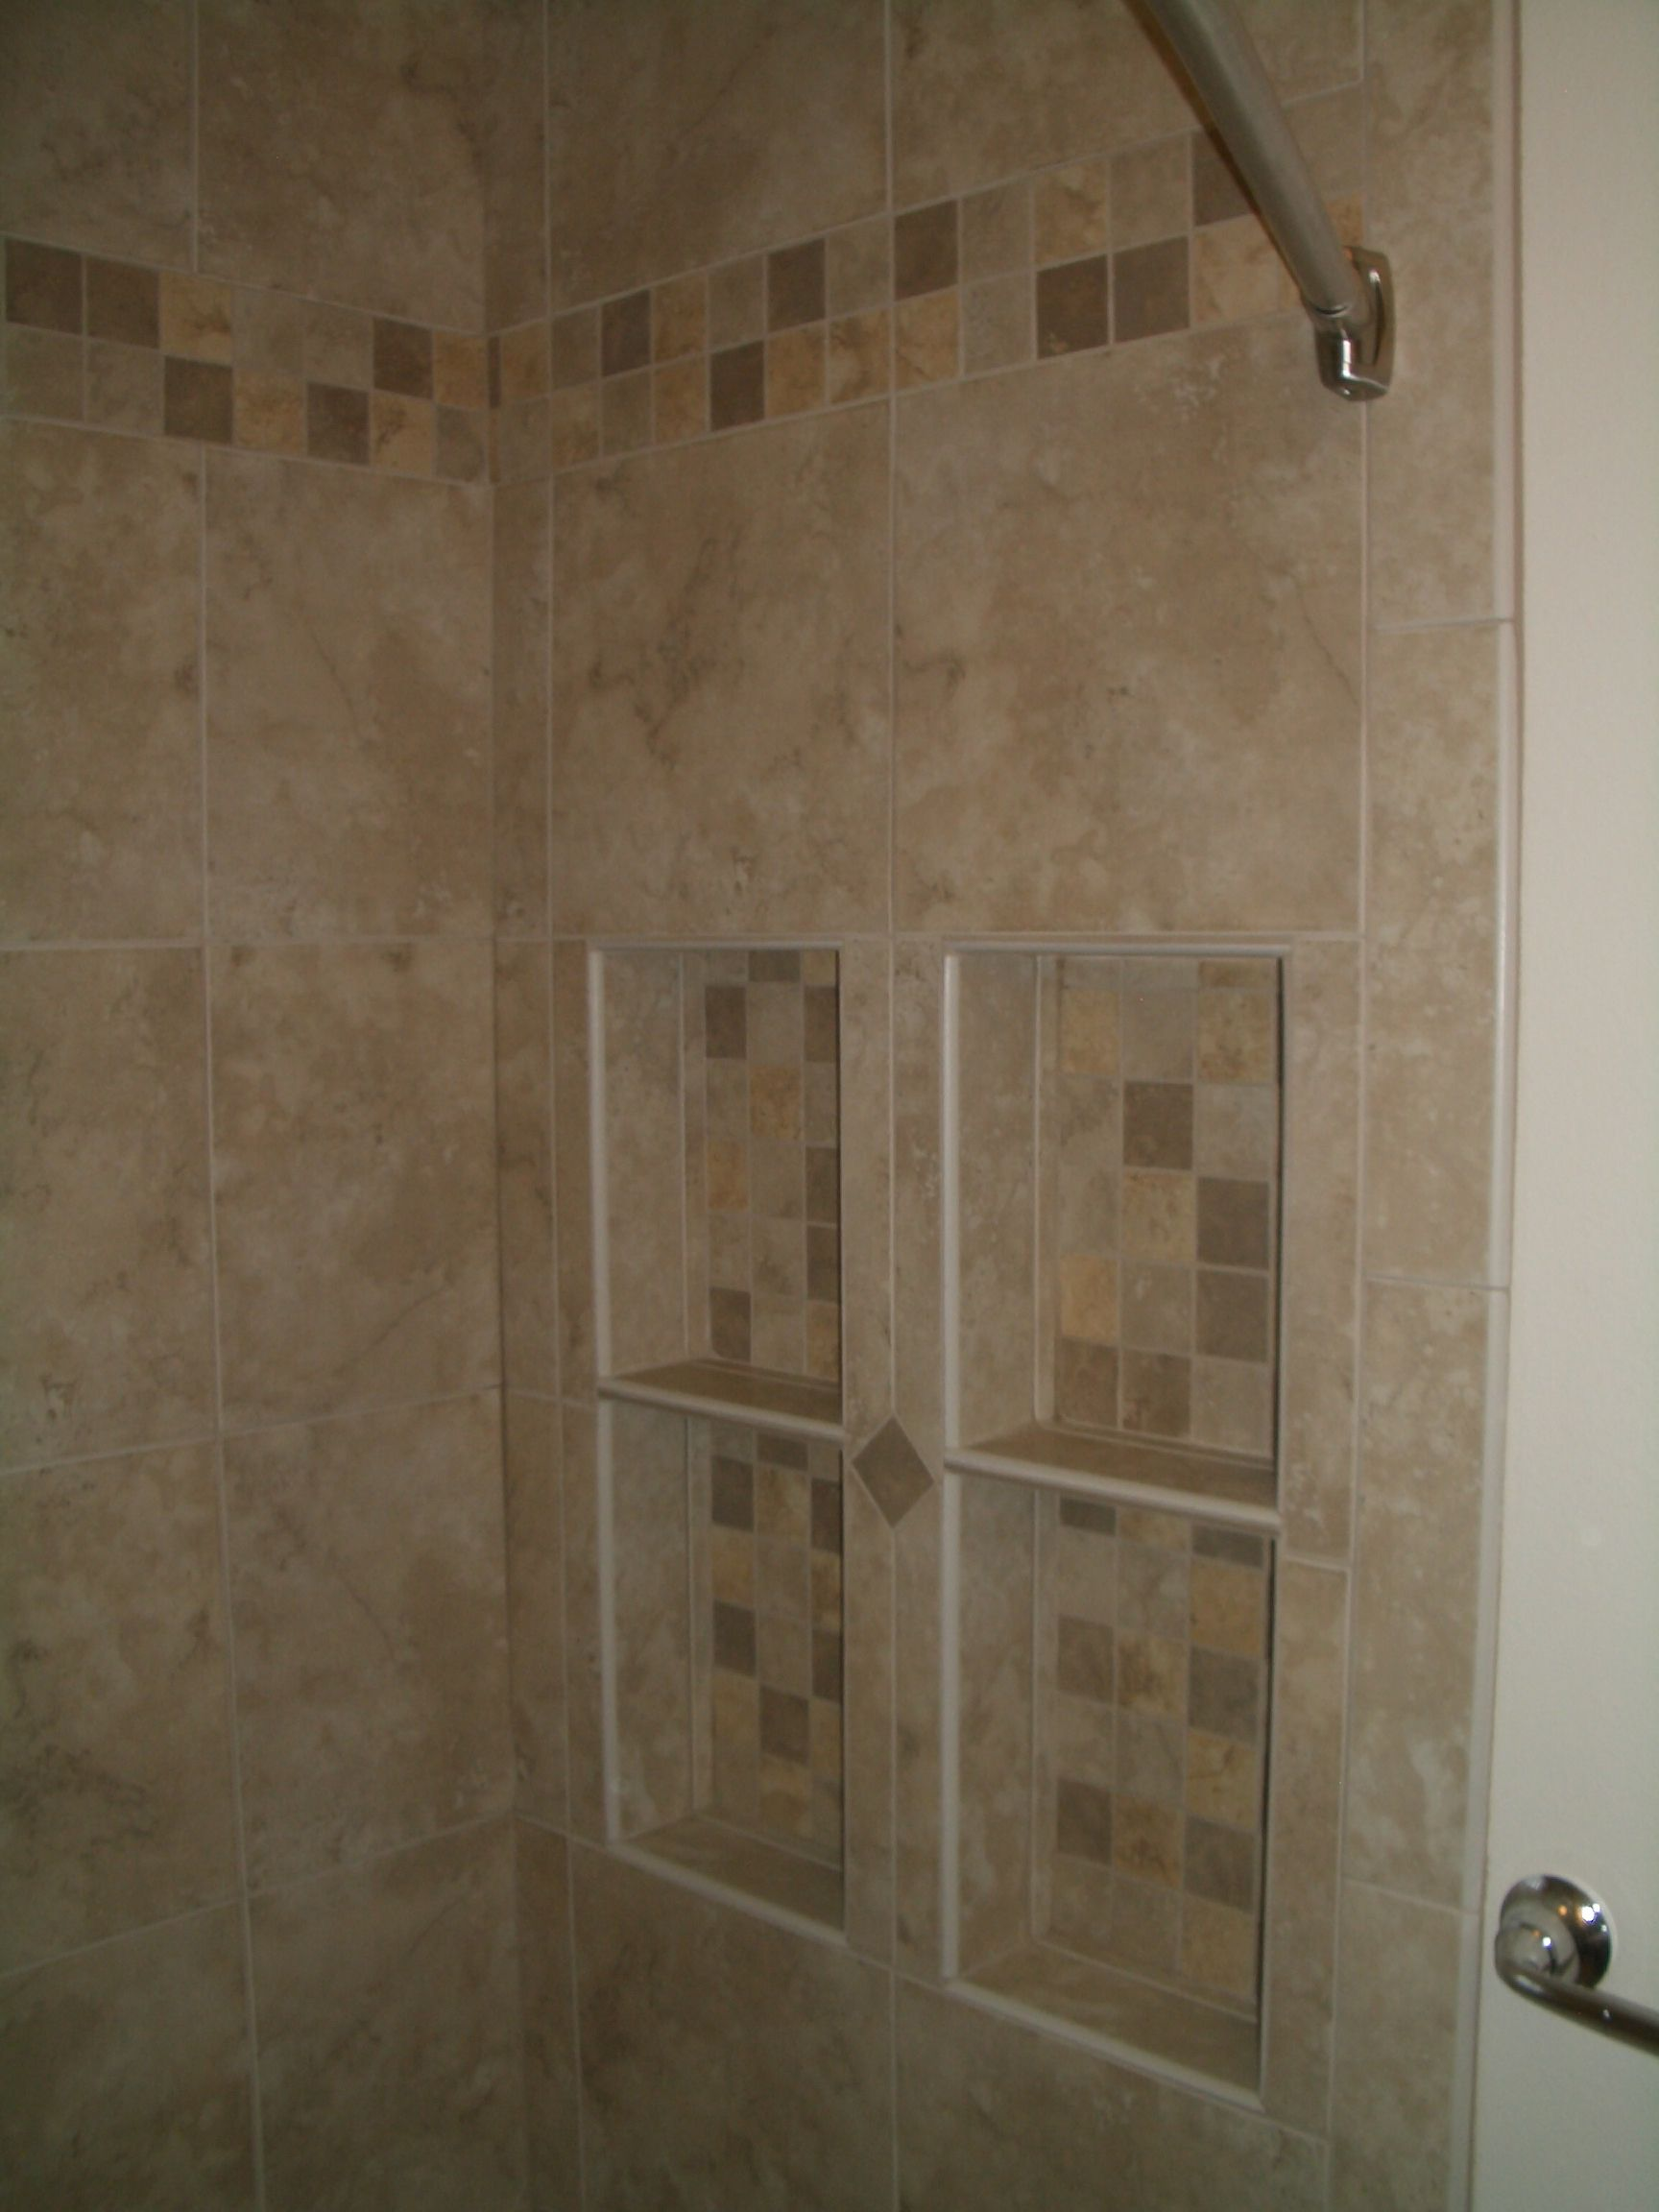 Shower bench ideas glass tile mosaic with grey wall and floor shower bench ideas glass tile mosaic with grey wall and floor tile home favorite places spaces pinterest shower benches tile mosaics and photo doublecrazyfo Gallery